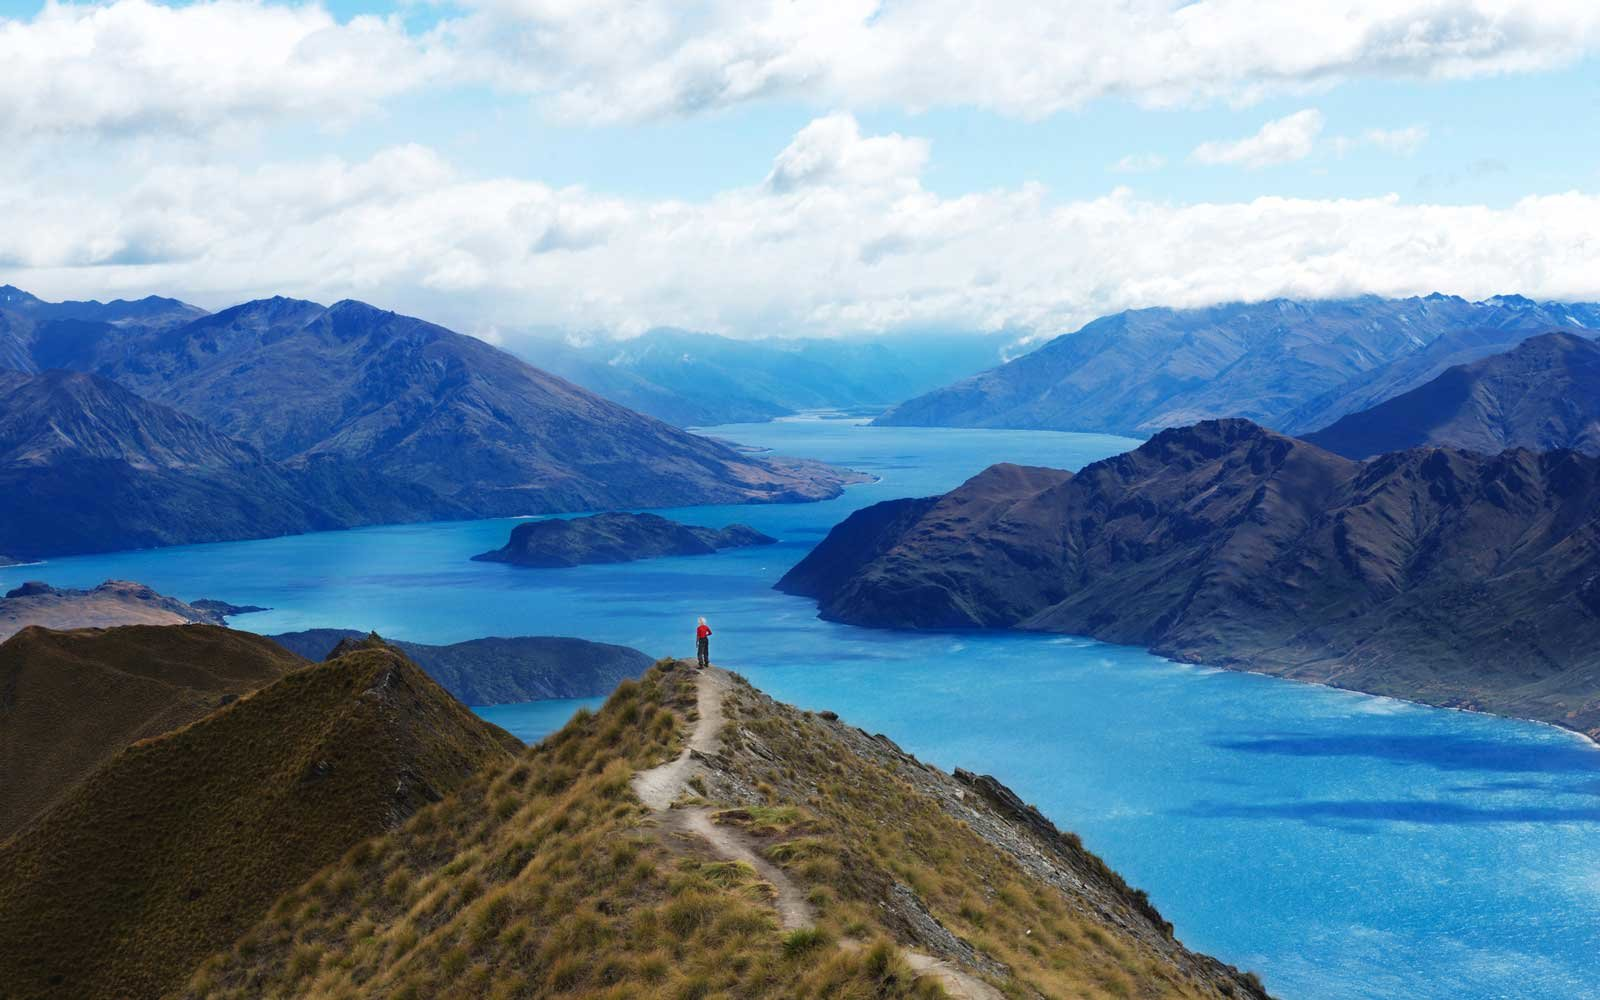 This Remote Corner of New Zealand Is Straight Out of Your Favorite Fantasy Film